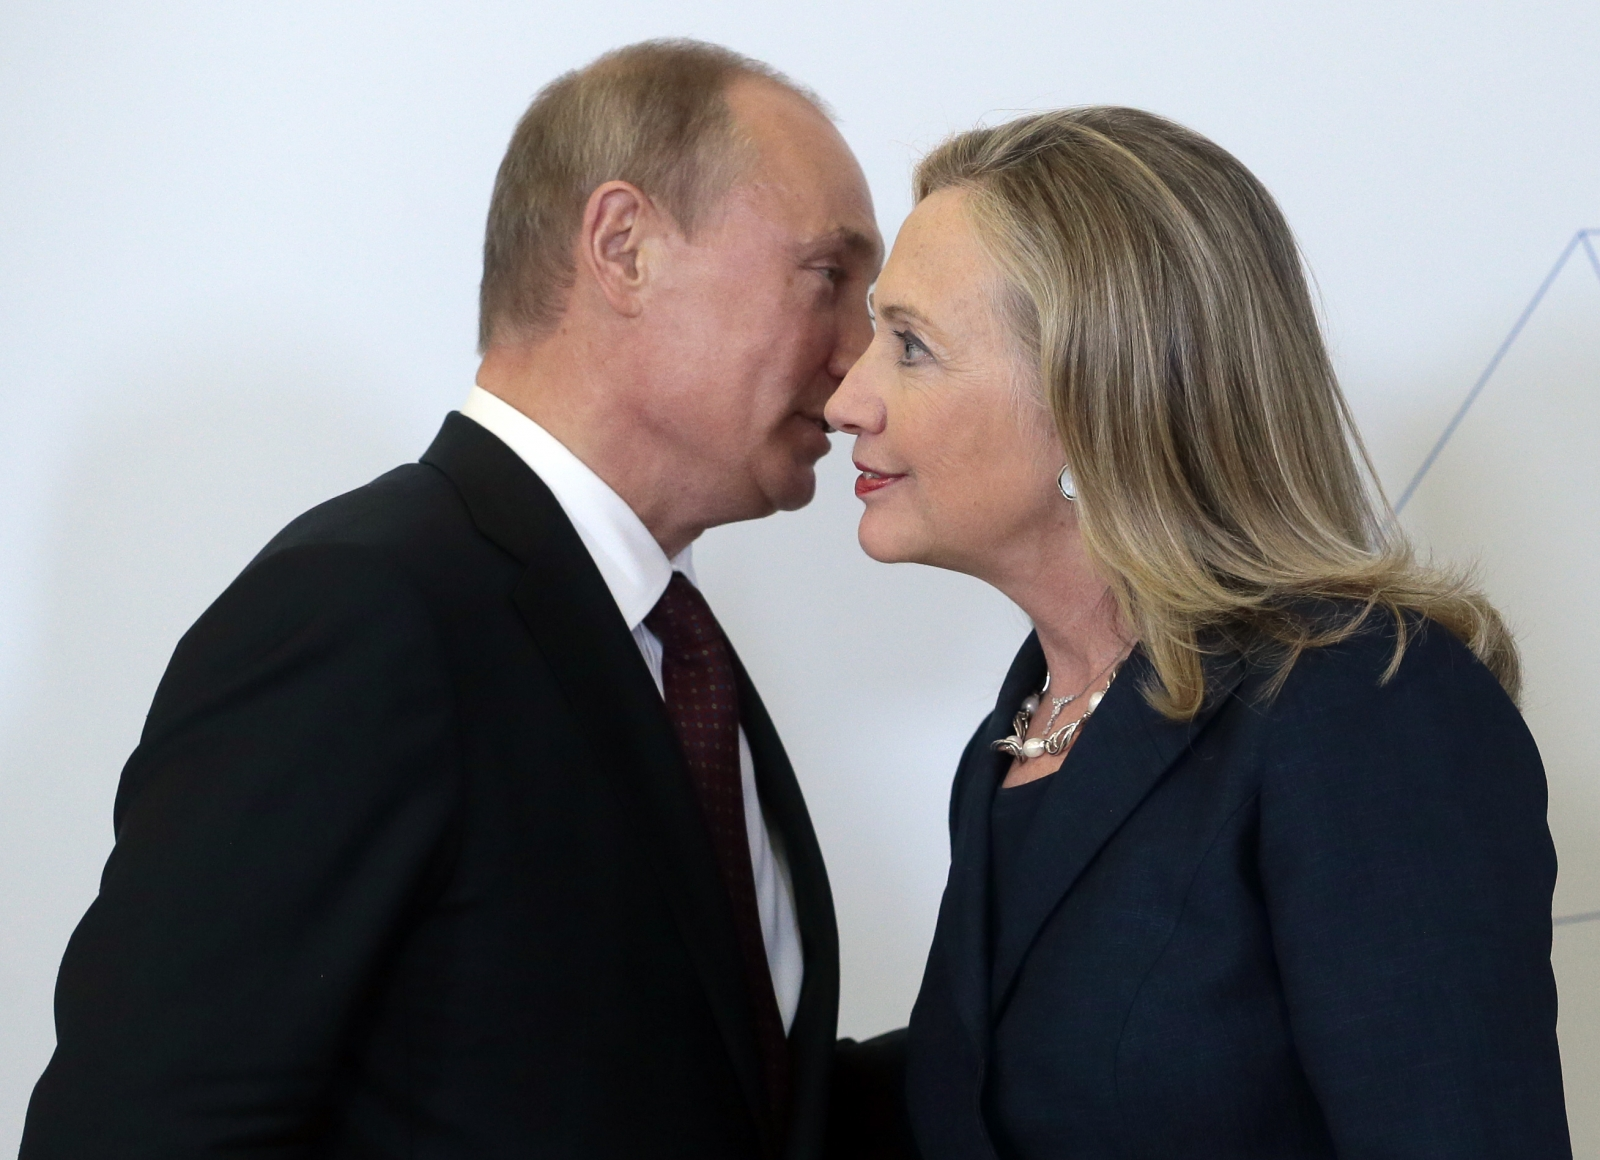 Vladimir Putin and Hillary Clinton (2012)